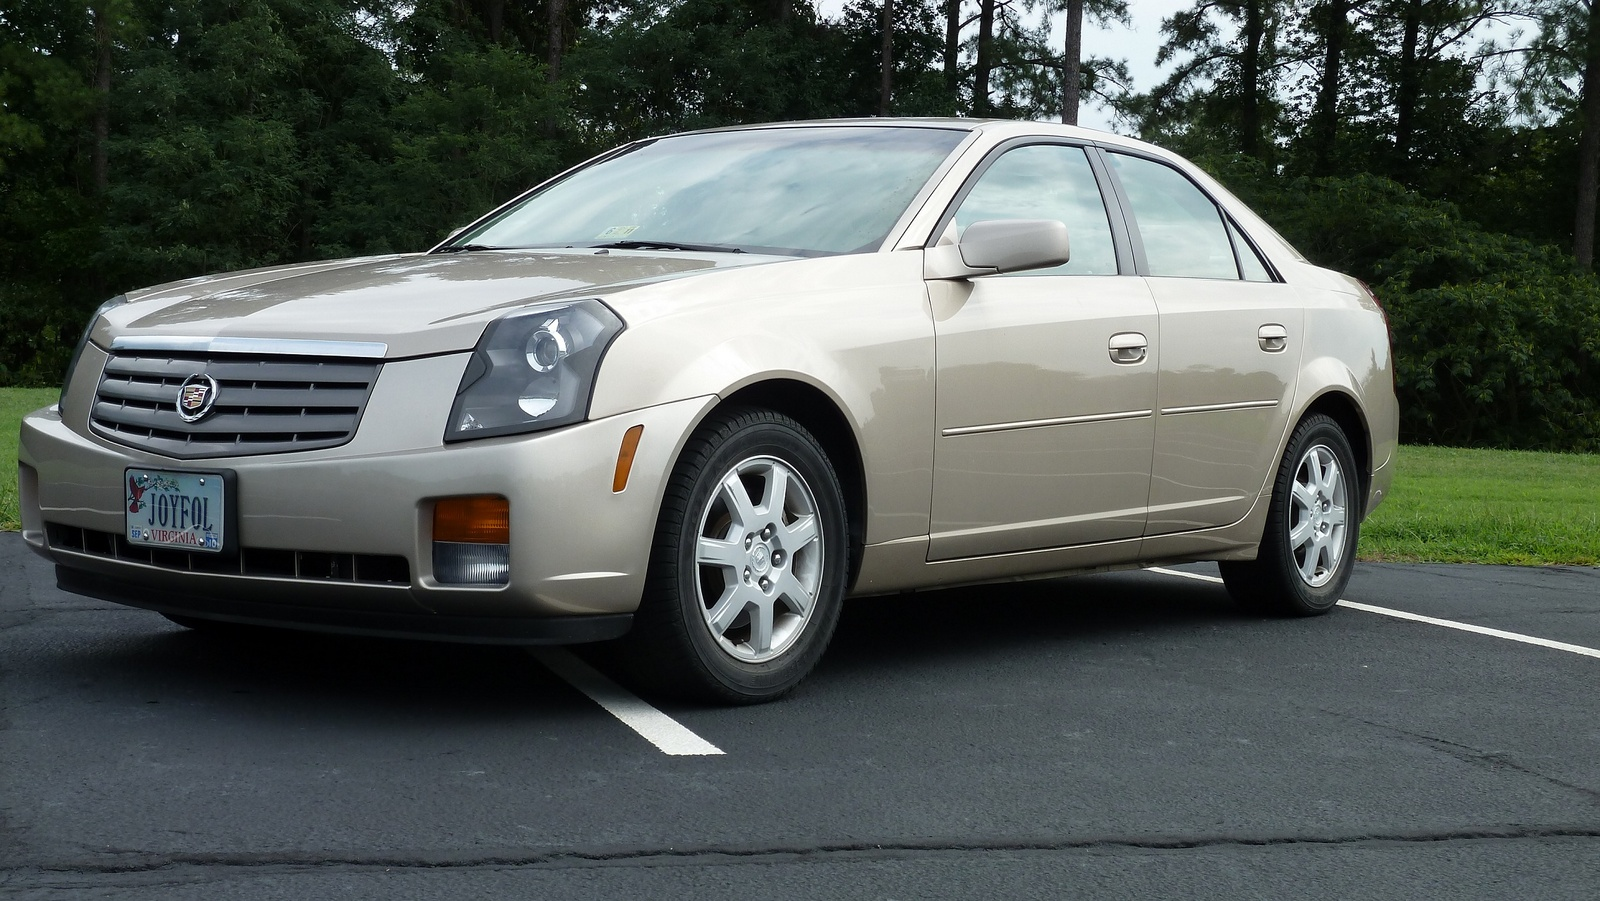 recalls 2005 cadillac 2011 cadillac chevy. Black Bedroom Furniture Sets. Home Design Ideas